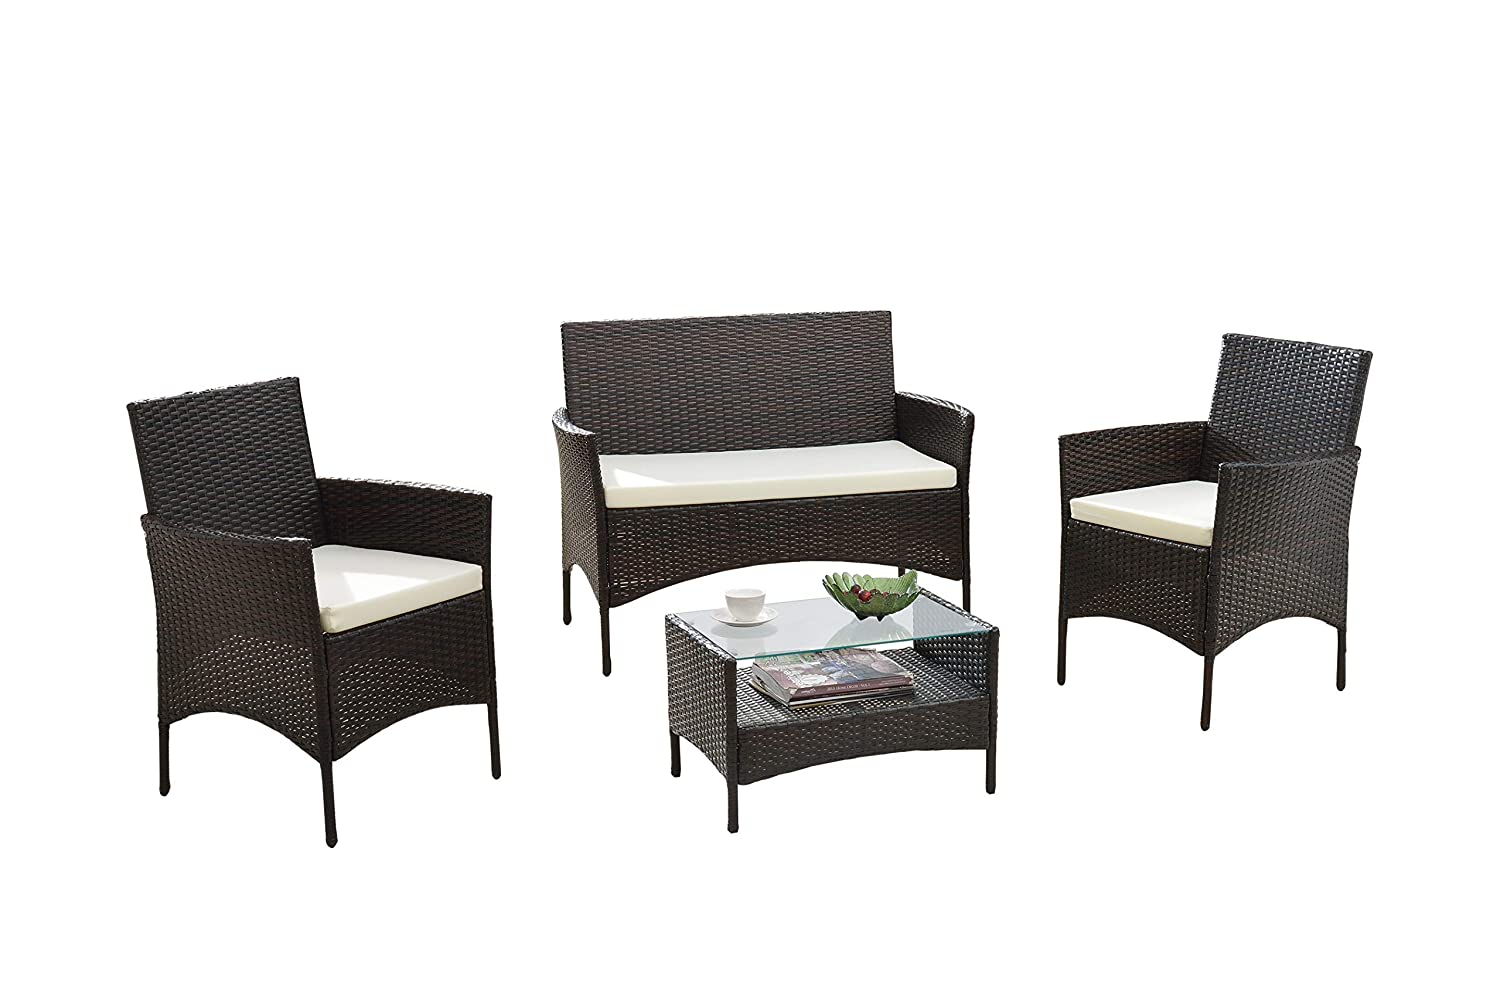 Modern Outdoor Garden, Patio 4 Piece Seat - Grey, Dark Espresso Wicker Sofa  Furniture Set (Grey)